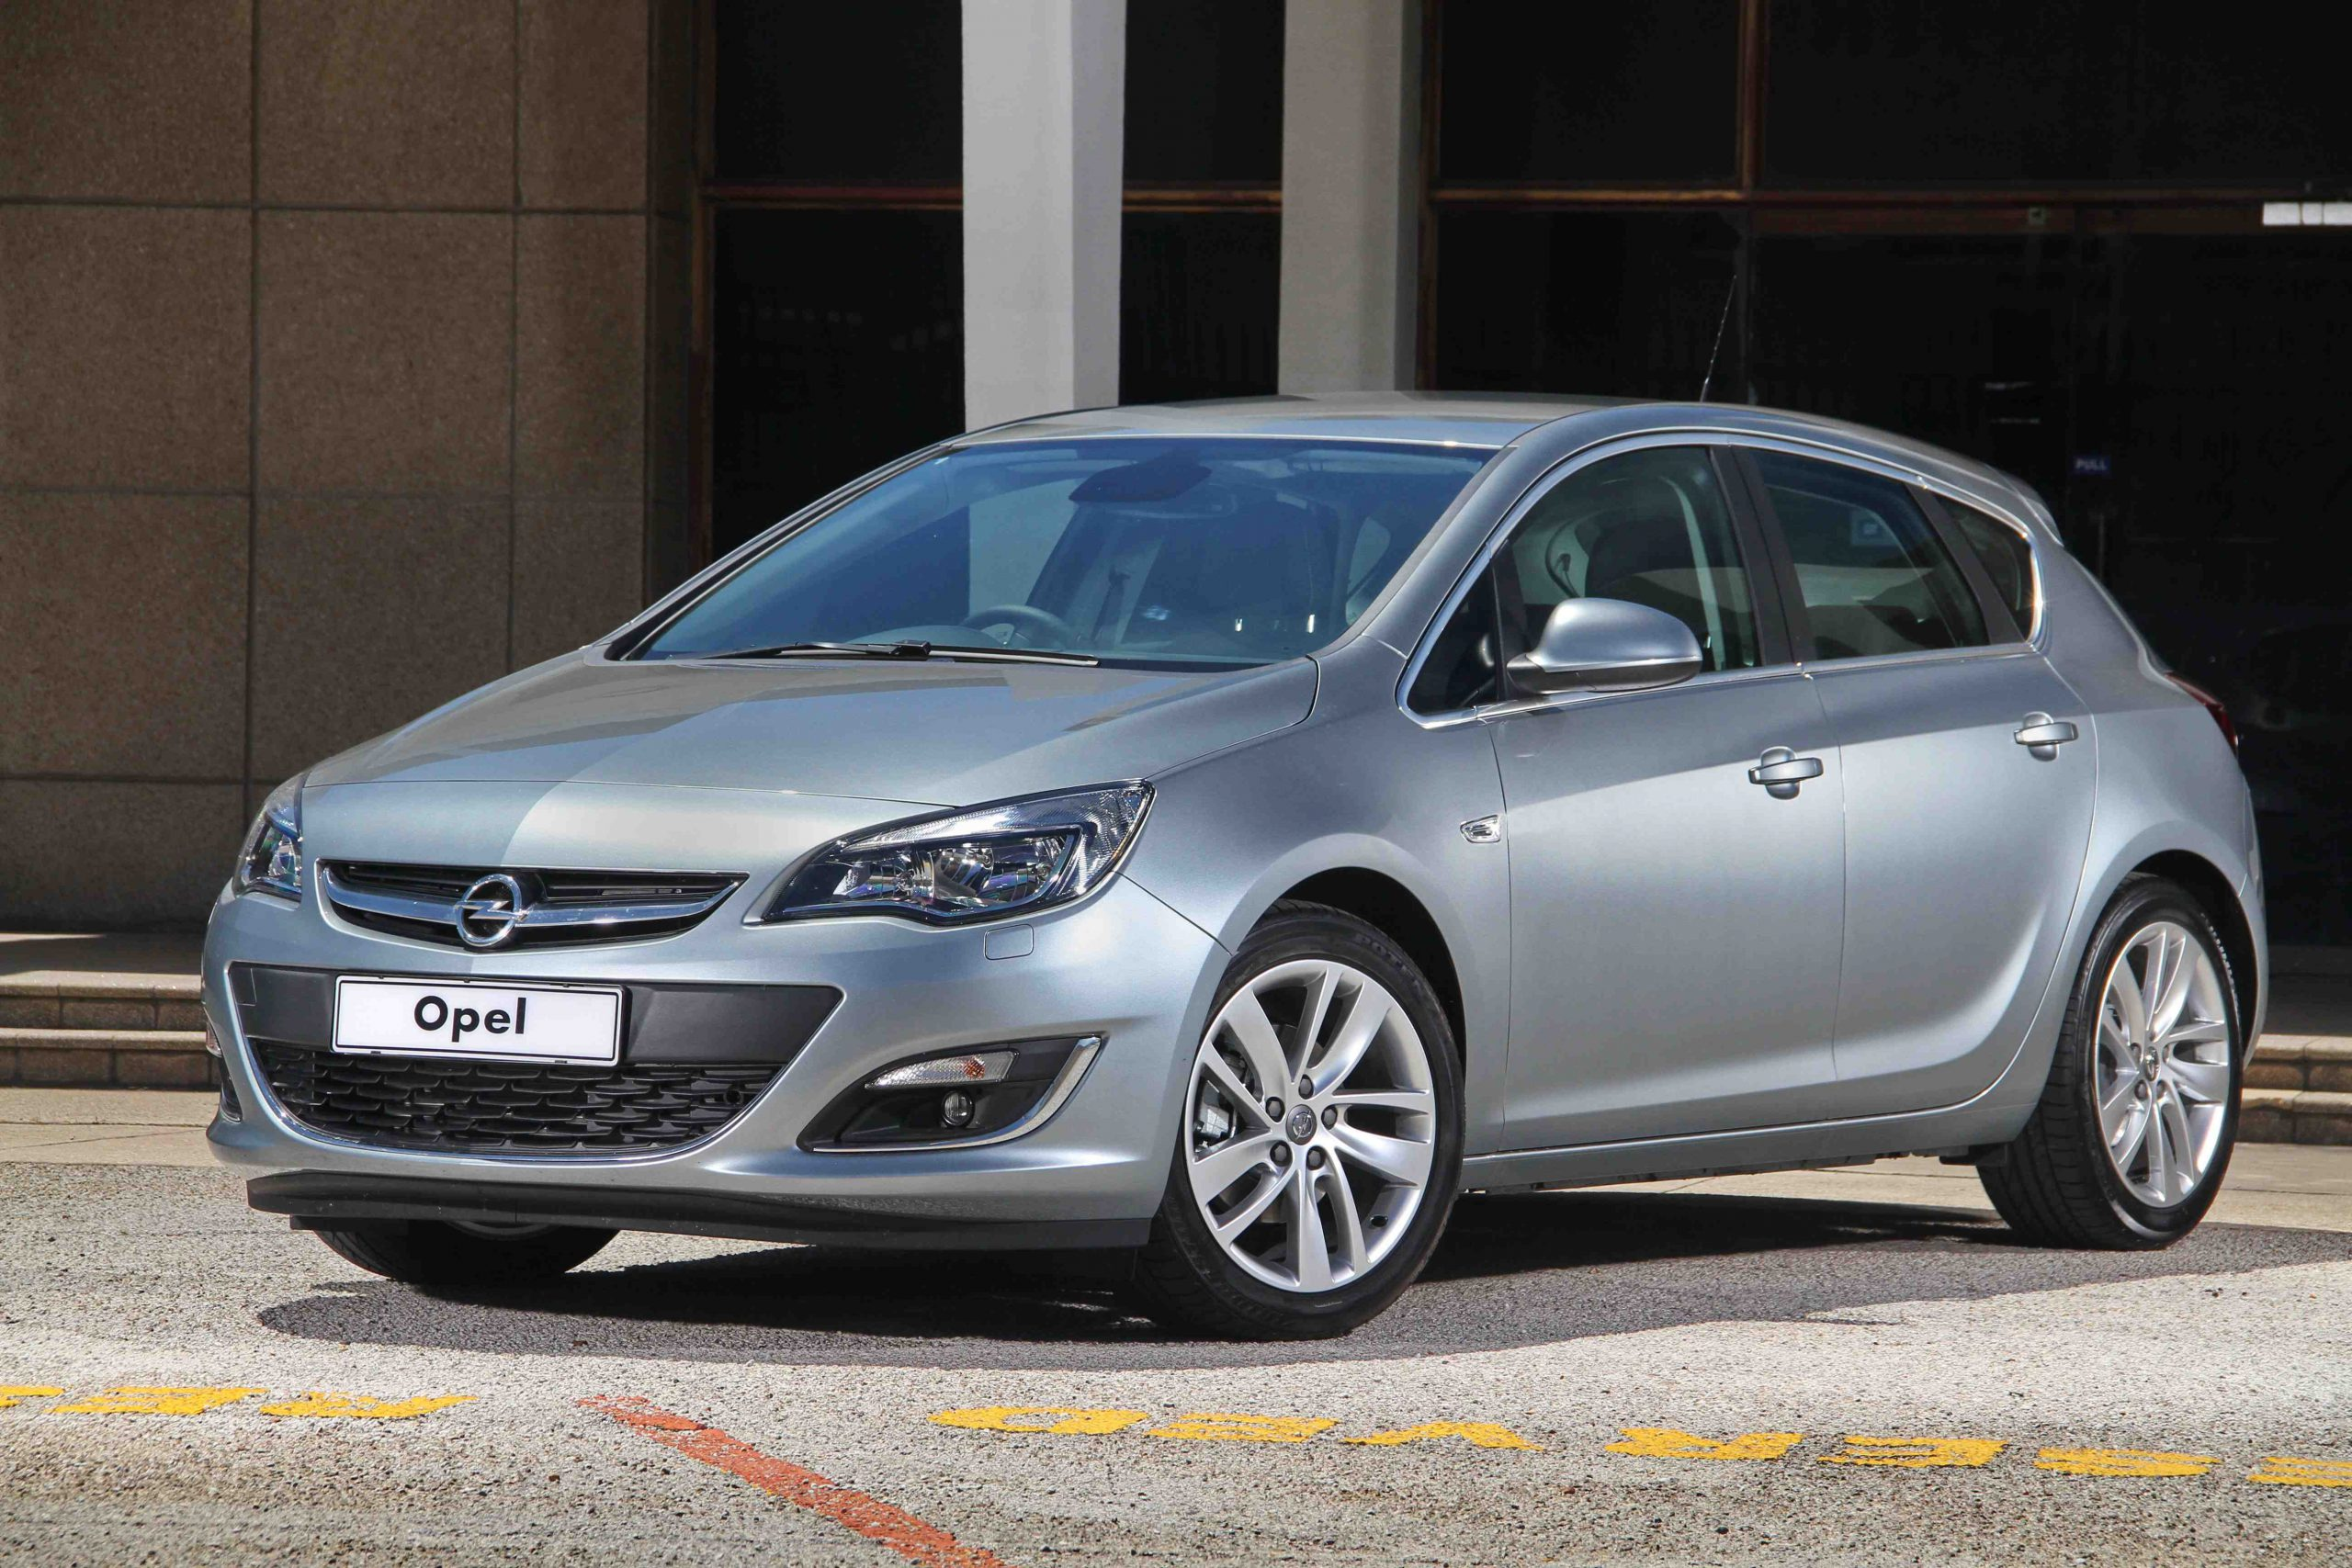 Opel Astra 1.4T Essentia (2014): New Car Review